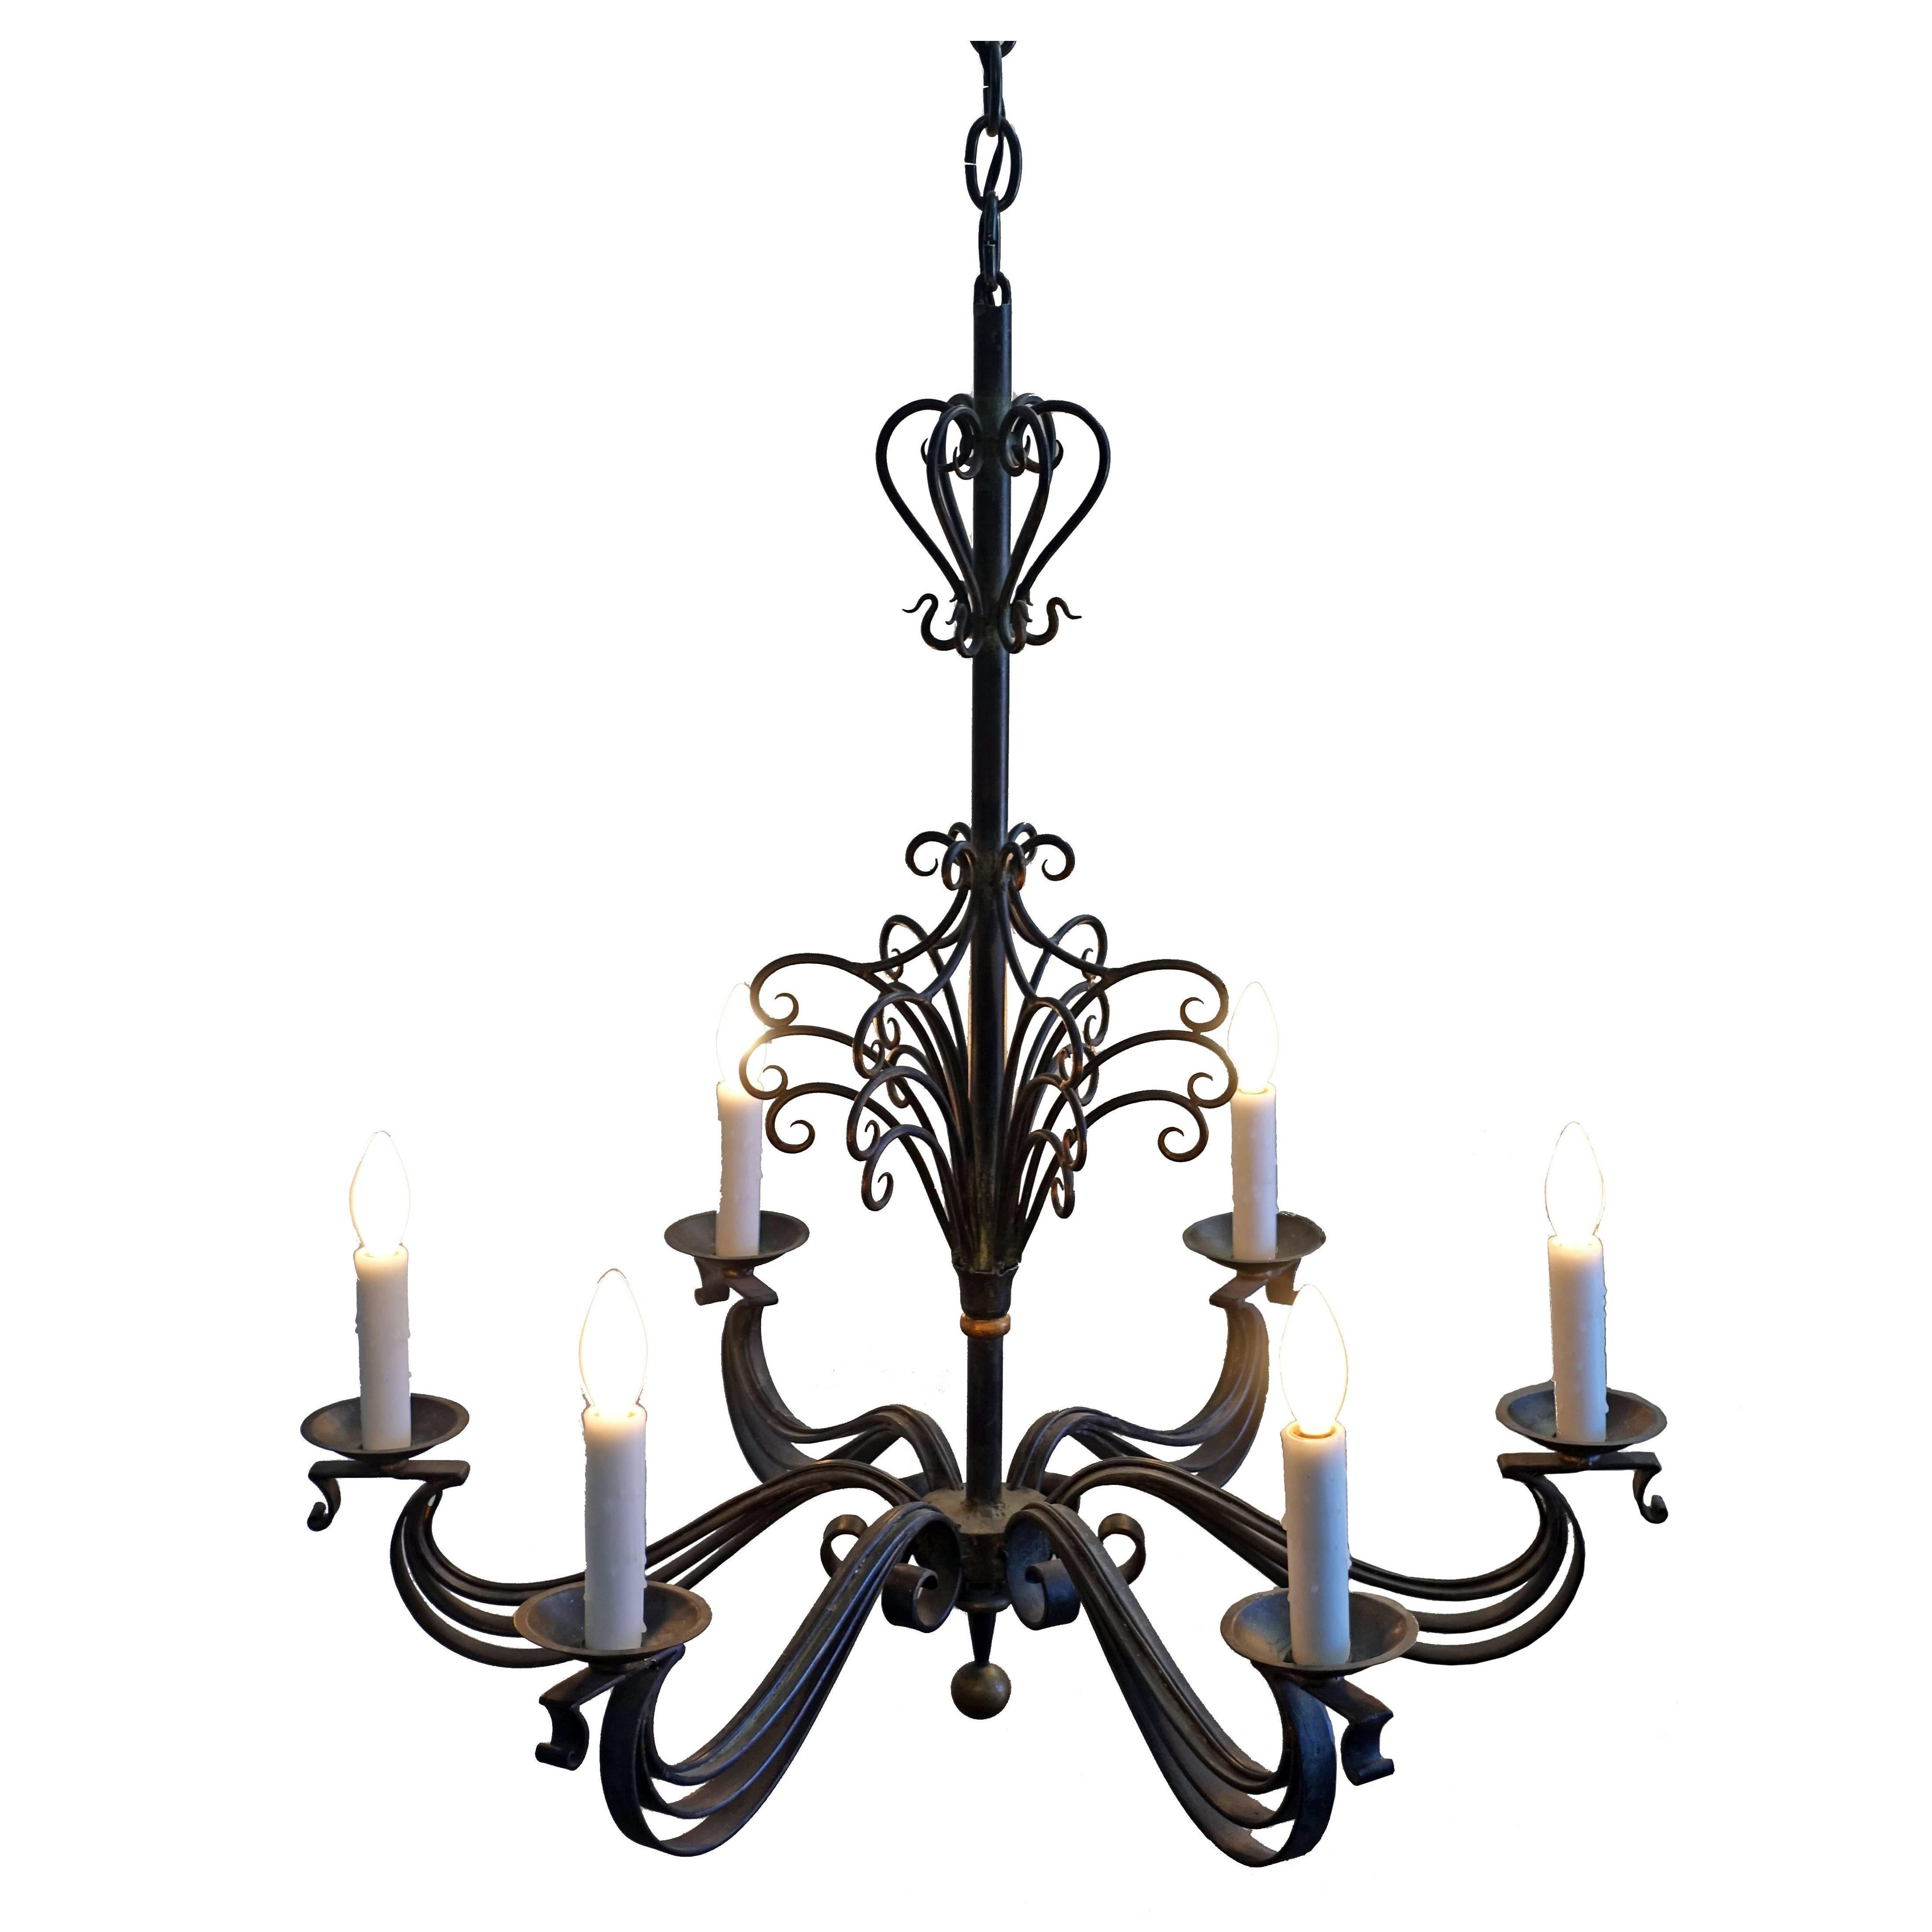 French Wrought Iron Chandelier Light Fixture